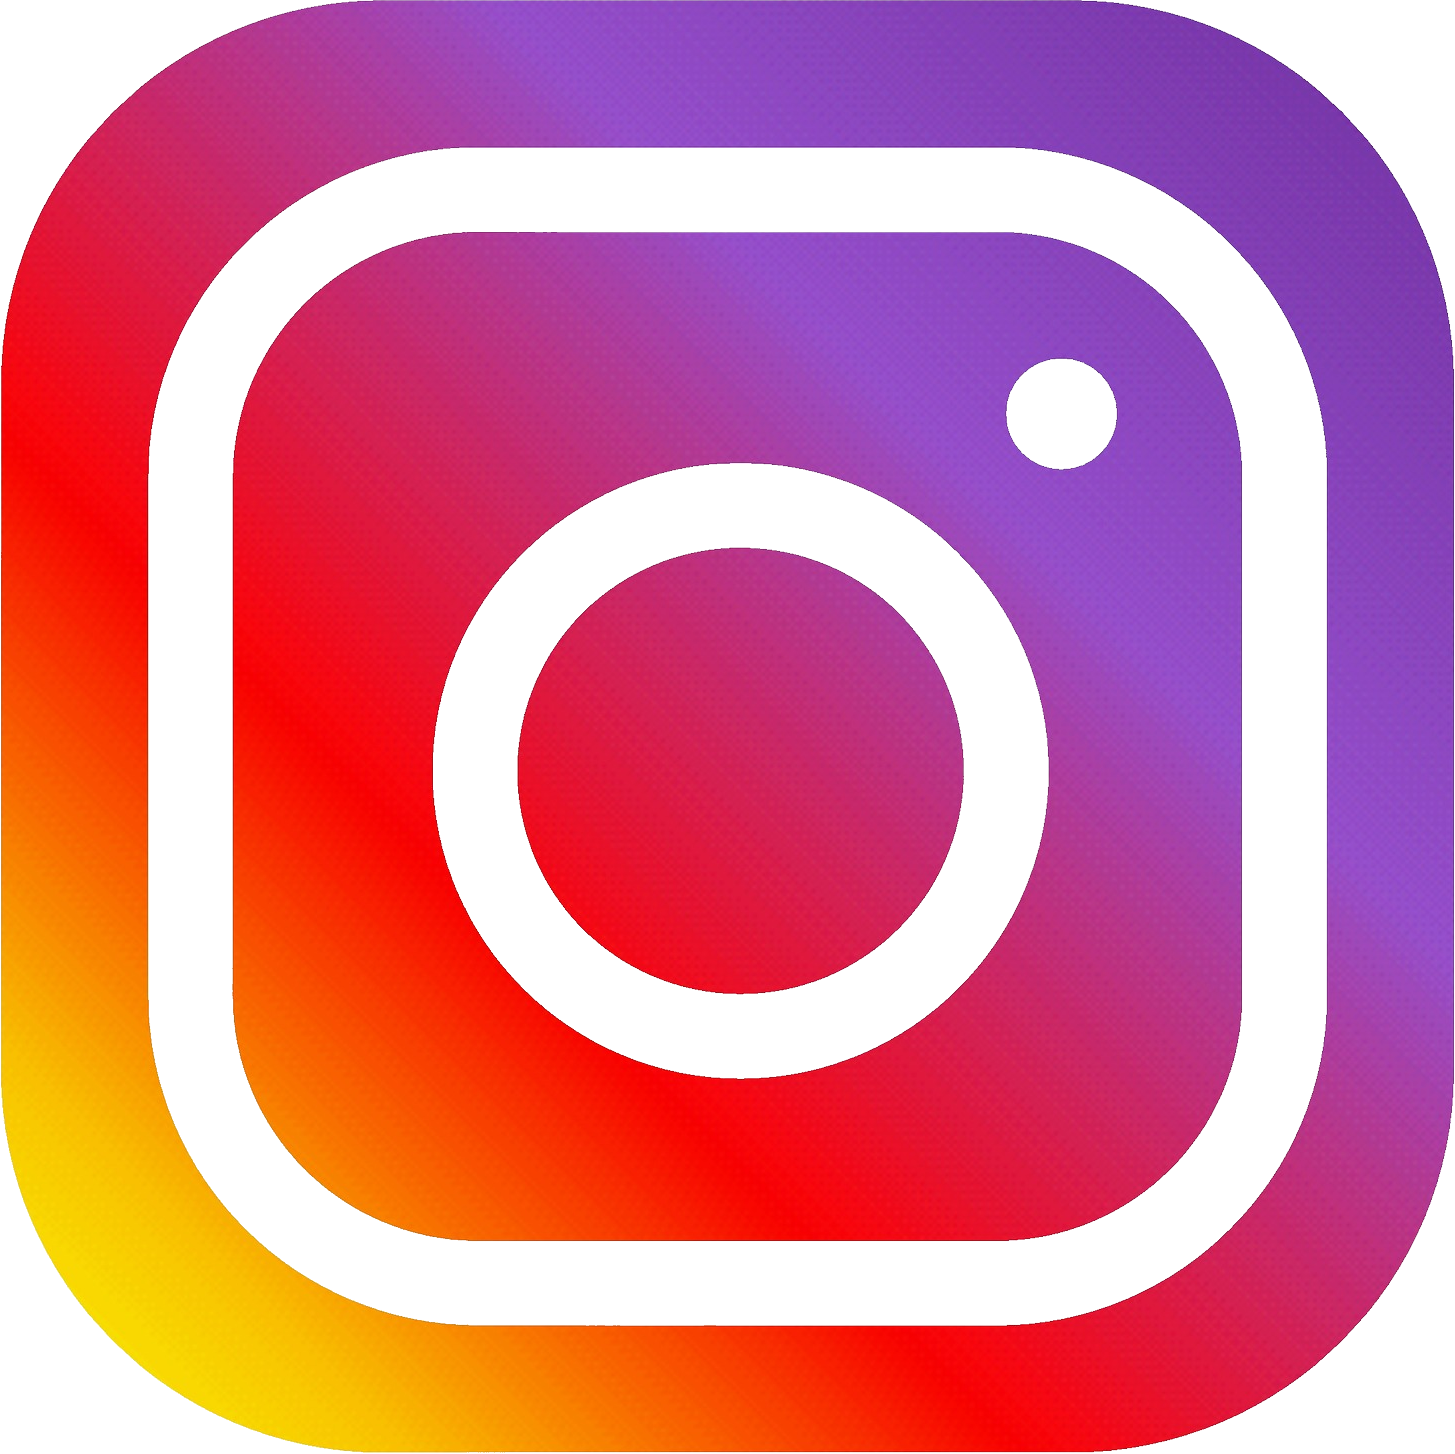 logo instagram png hd